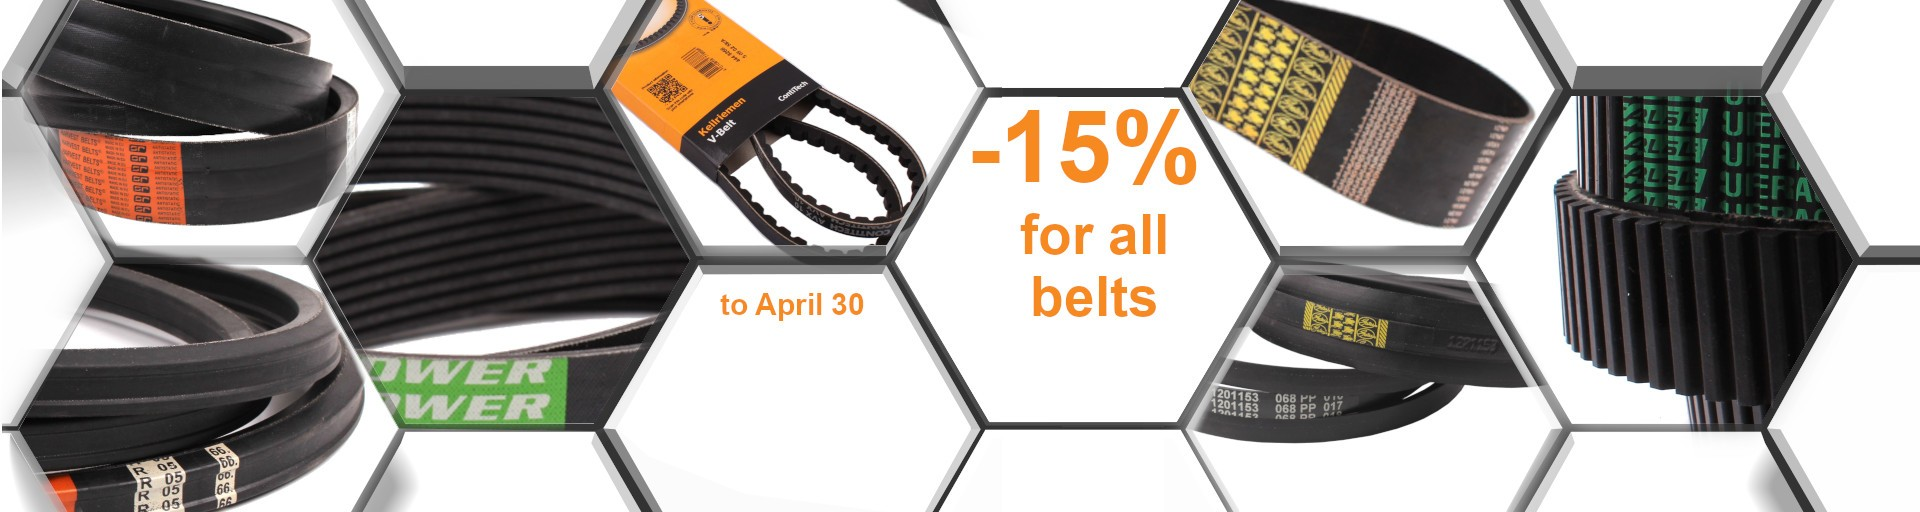 View more discount belts